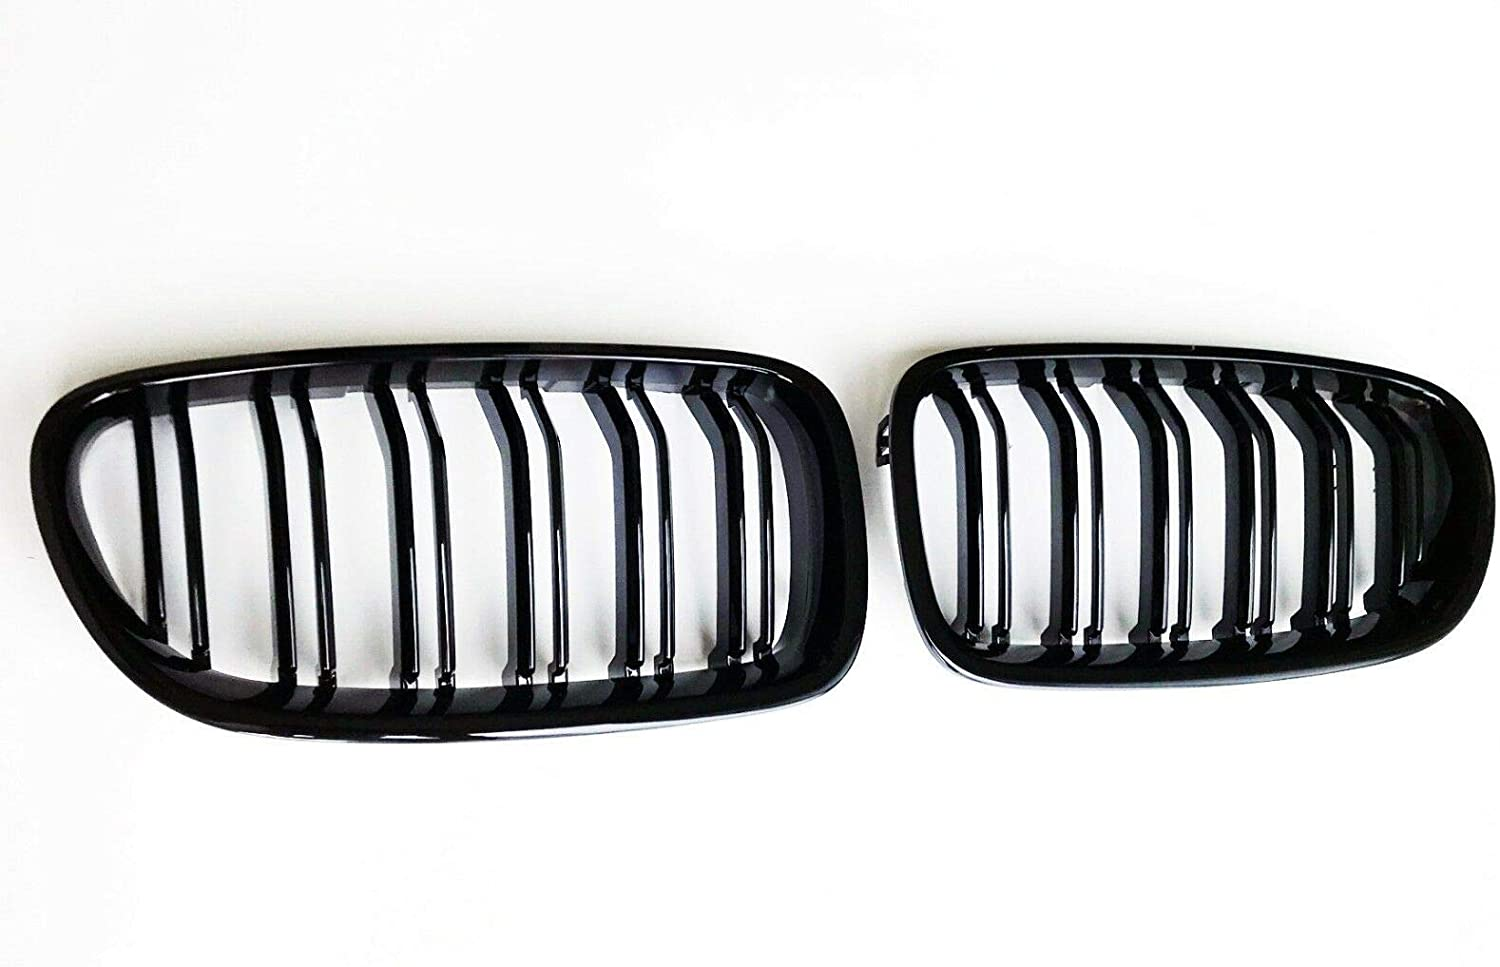 3000Miles F10 Front Kidney Grill for 2010-2016 BMW 5 Series F10 F11 And F10 M5 Double Slats Gloss Black Grill, 2-pc Set